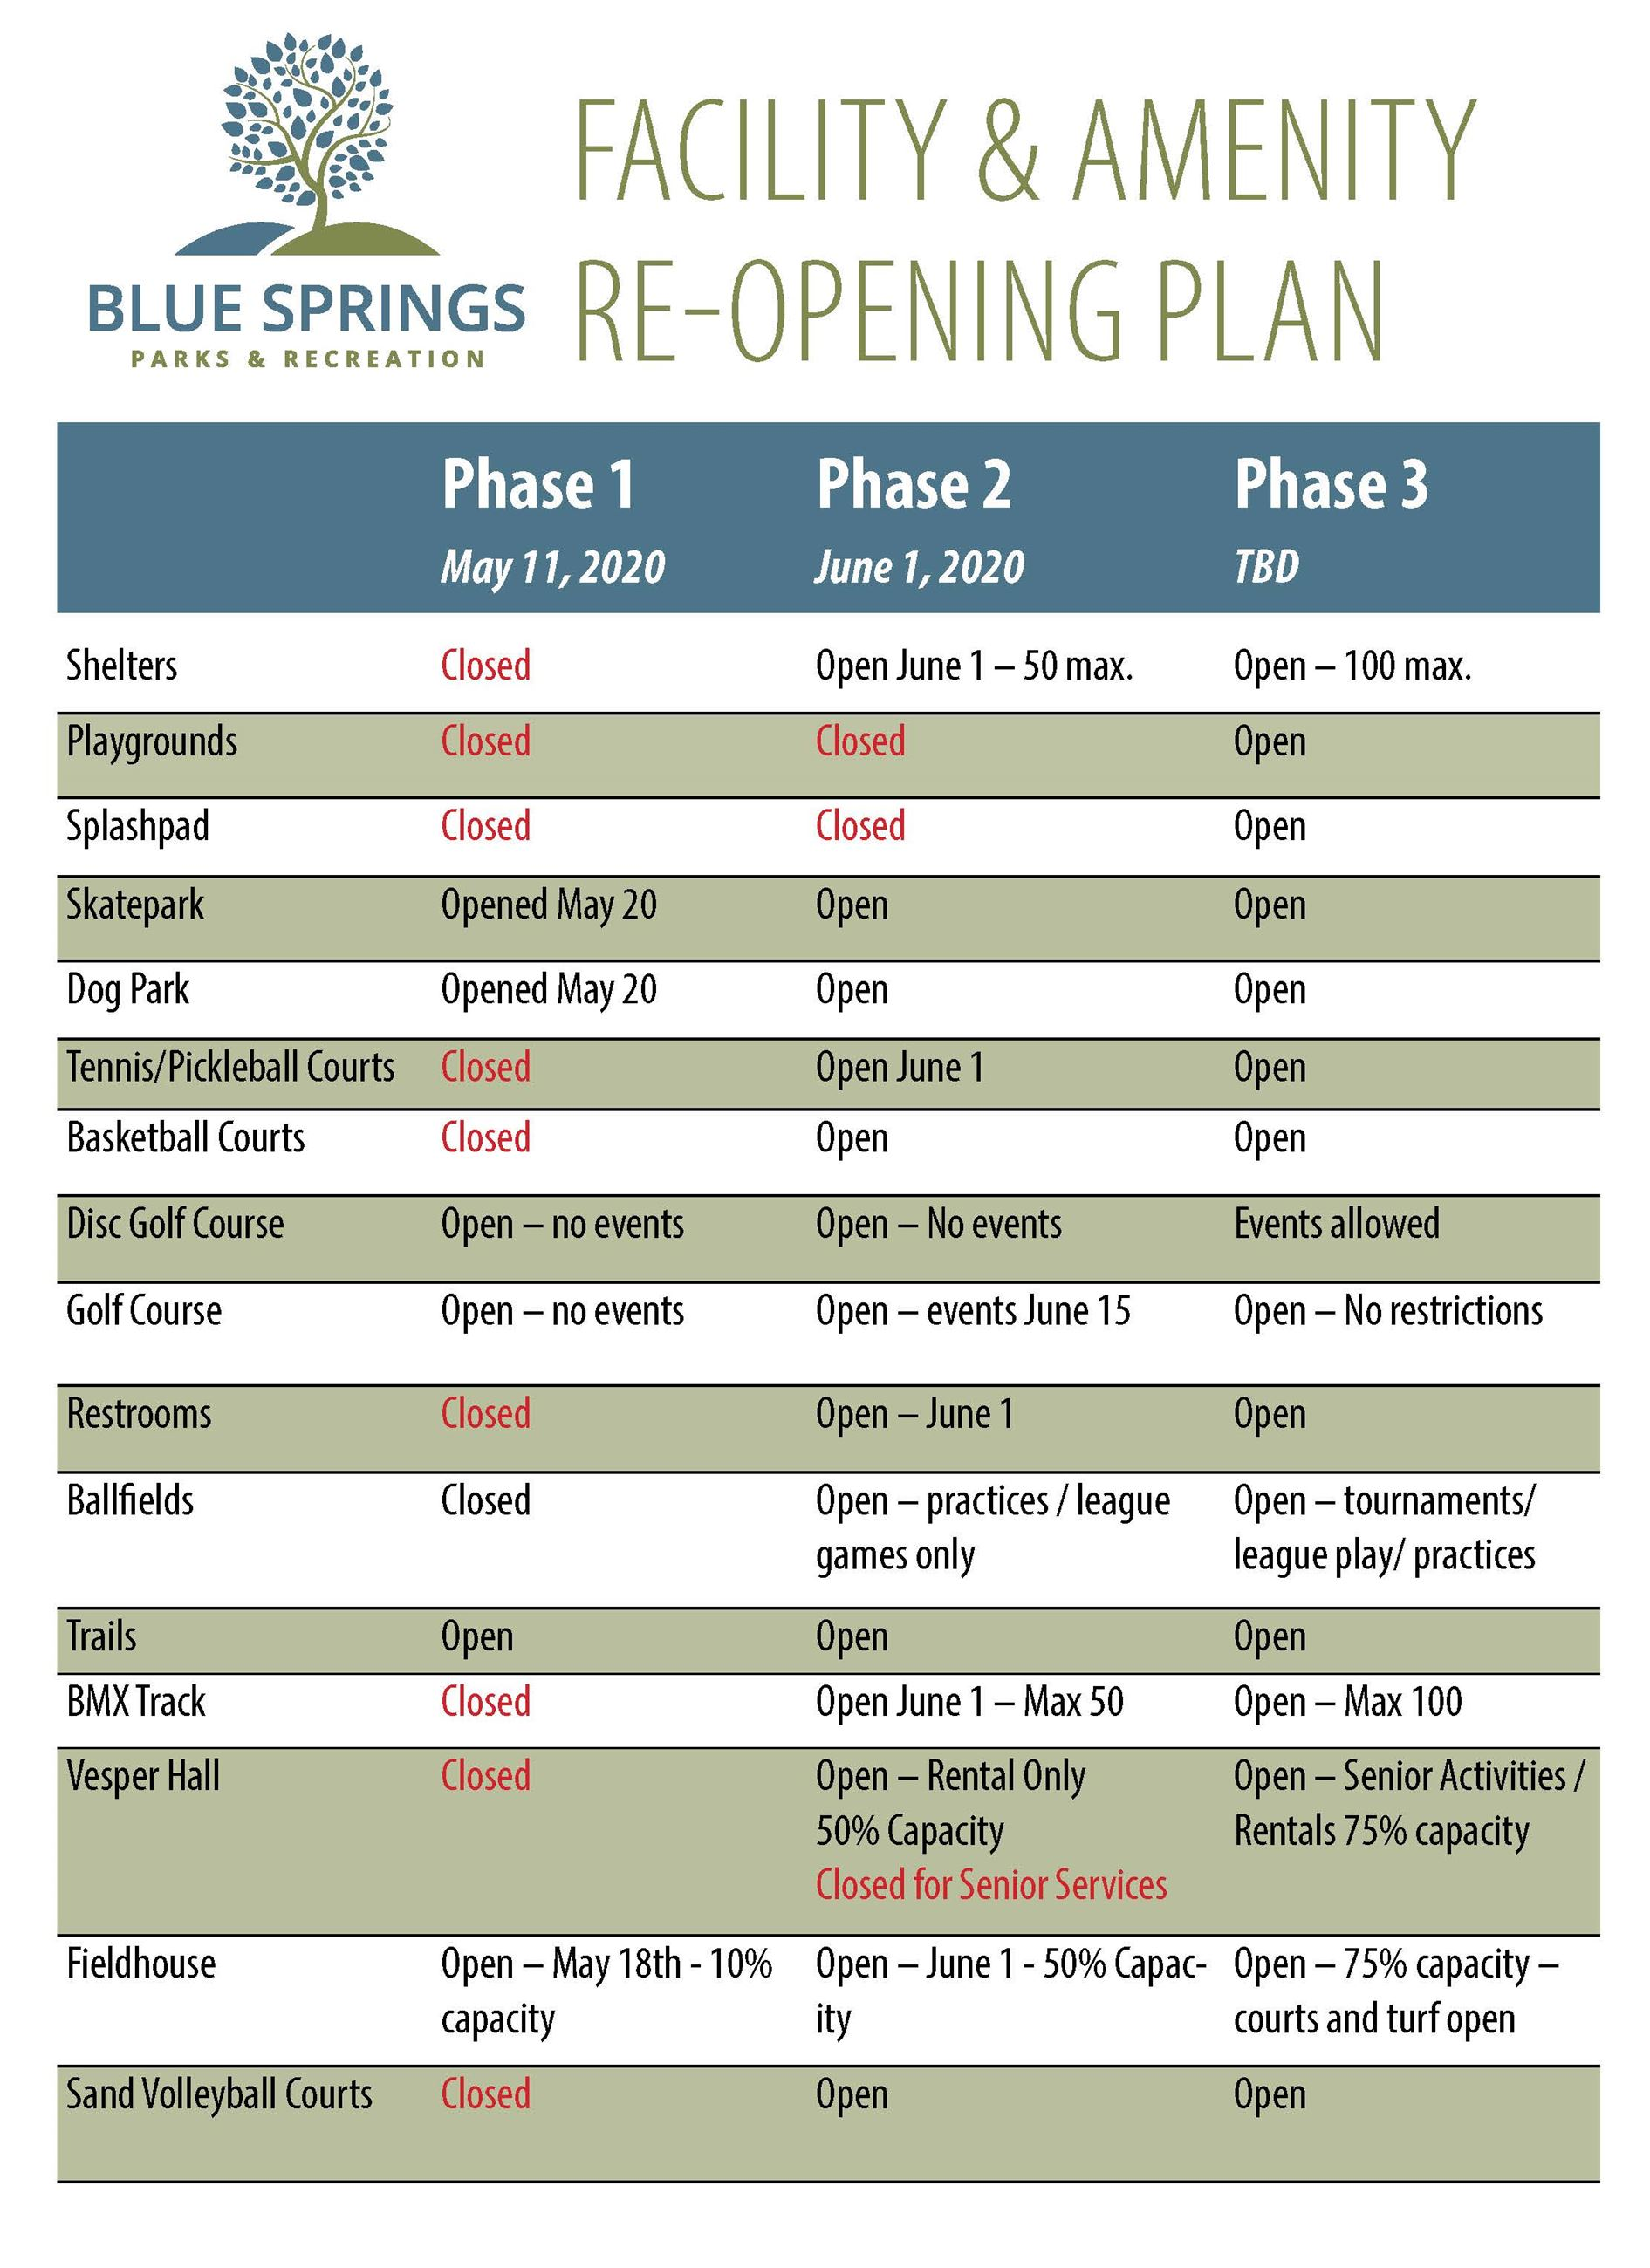 Parks Re-opening plan graphic